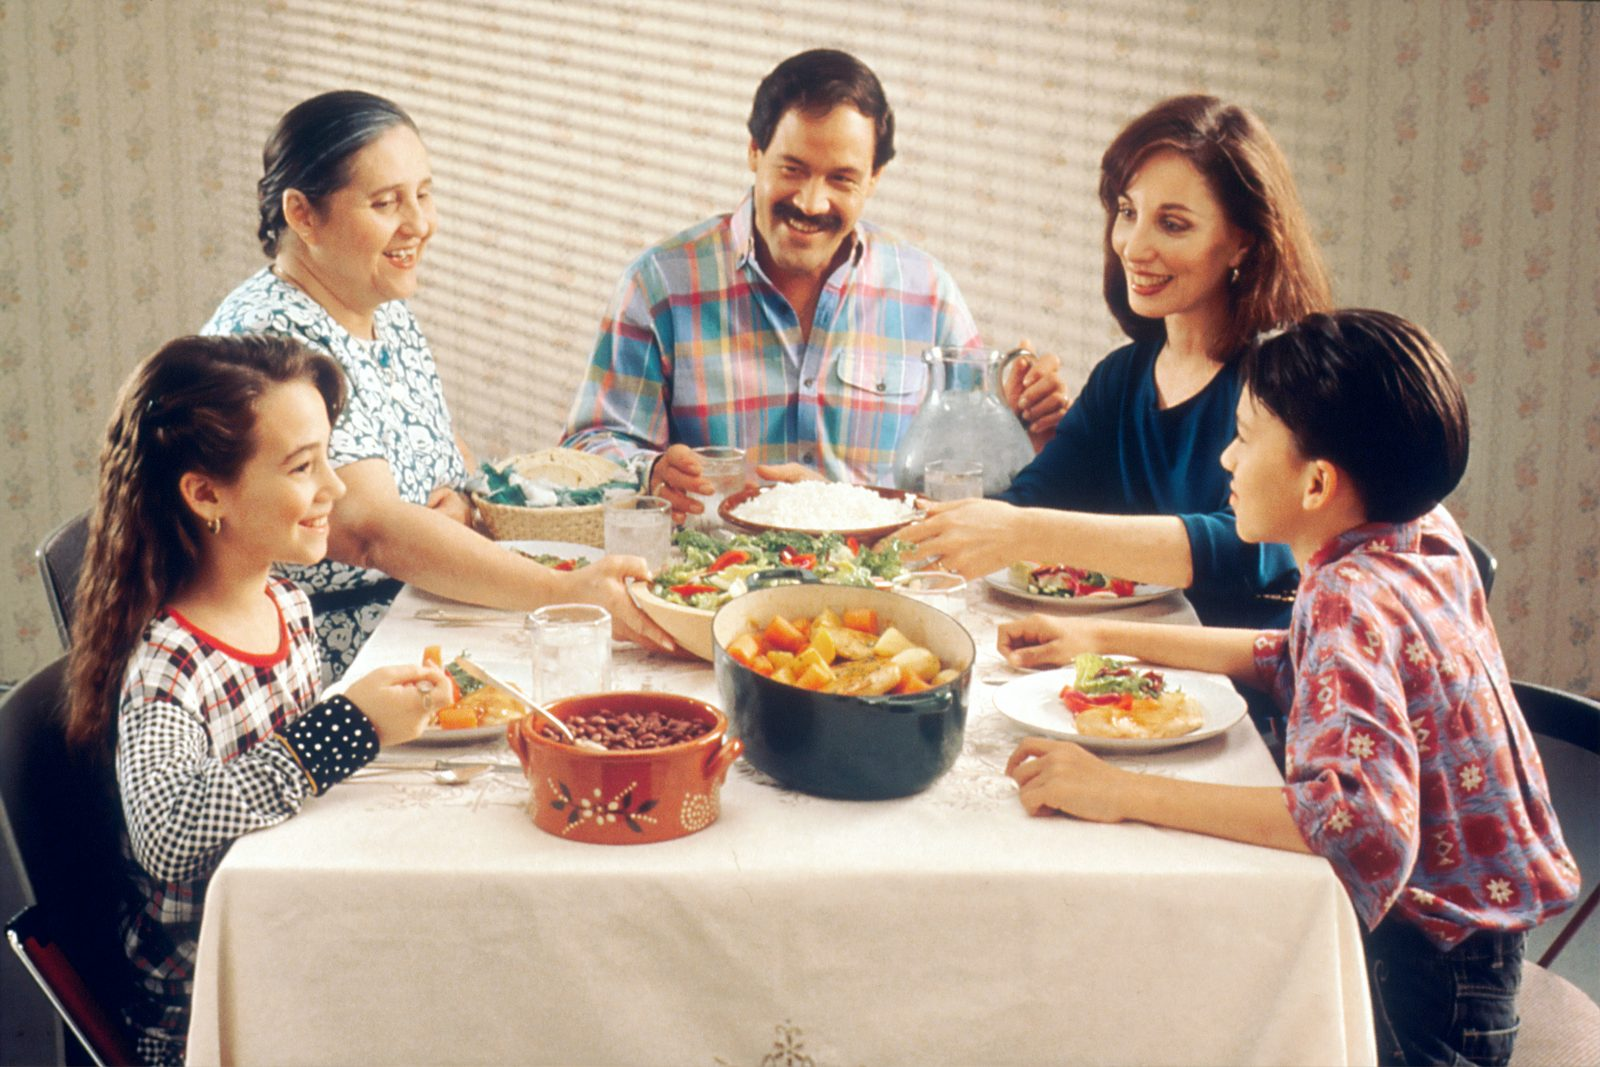 group of person eating indoors